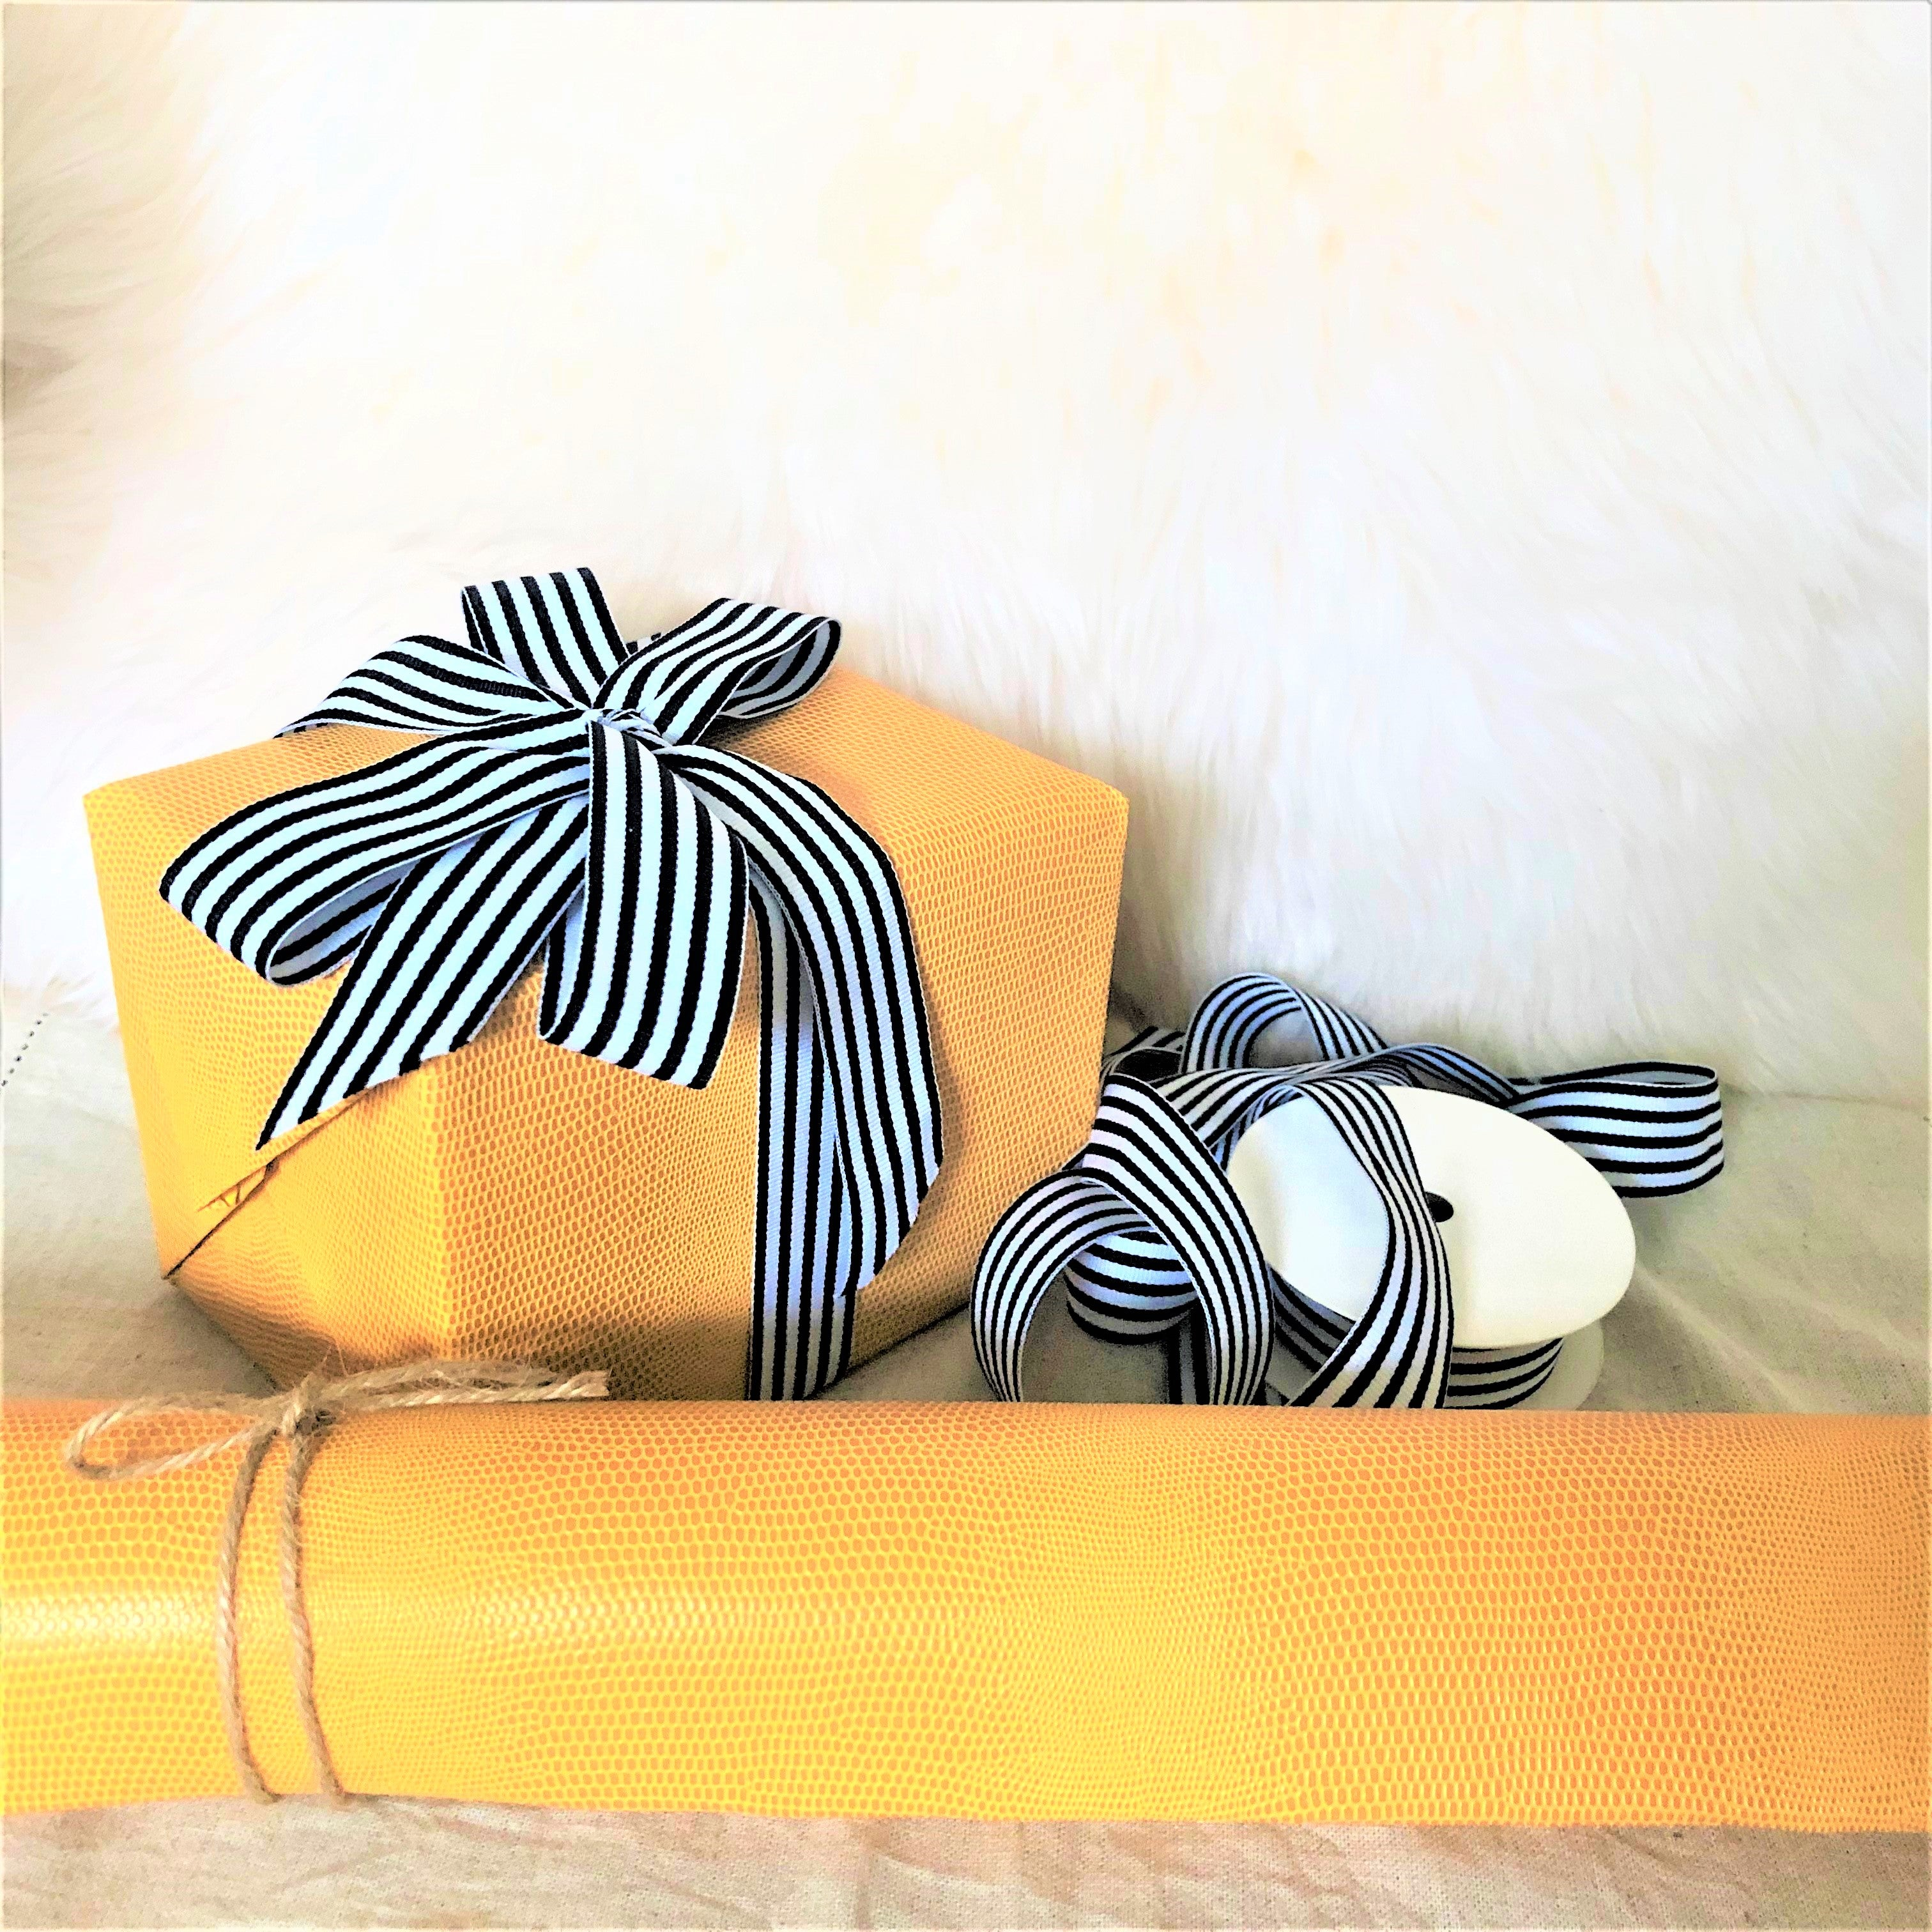 Black and White Striped Grosgrain Ribbon 1 Inch by Urban Vintage LA